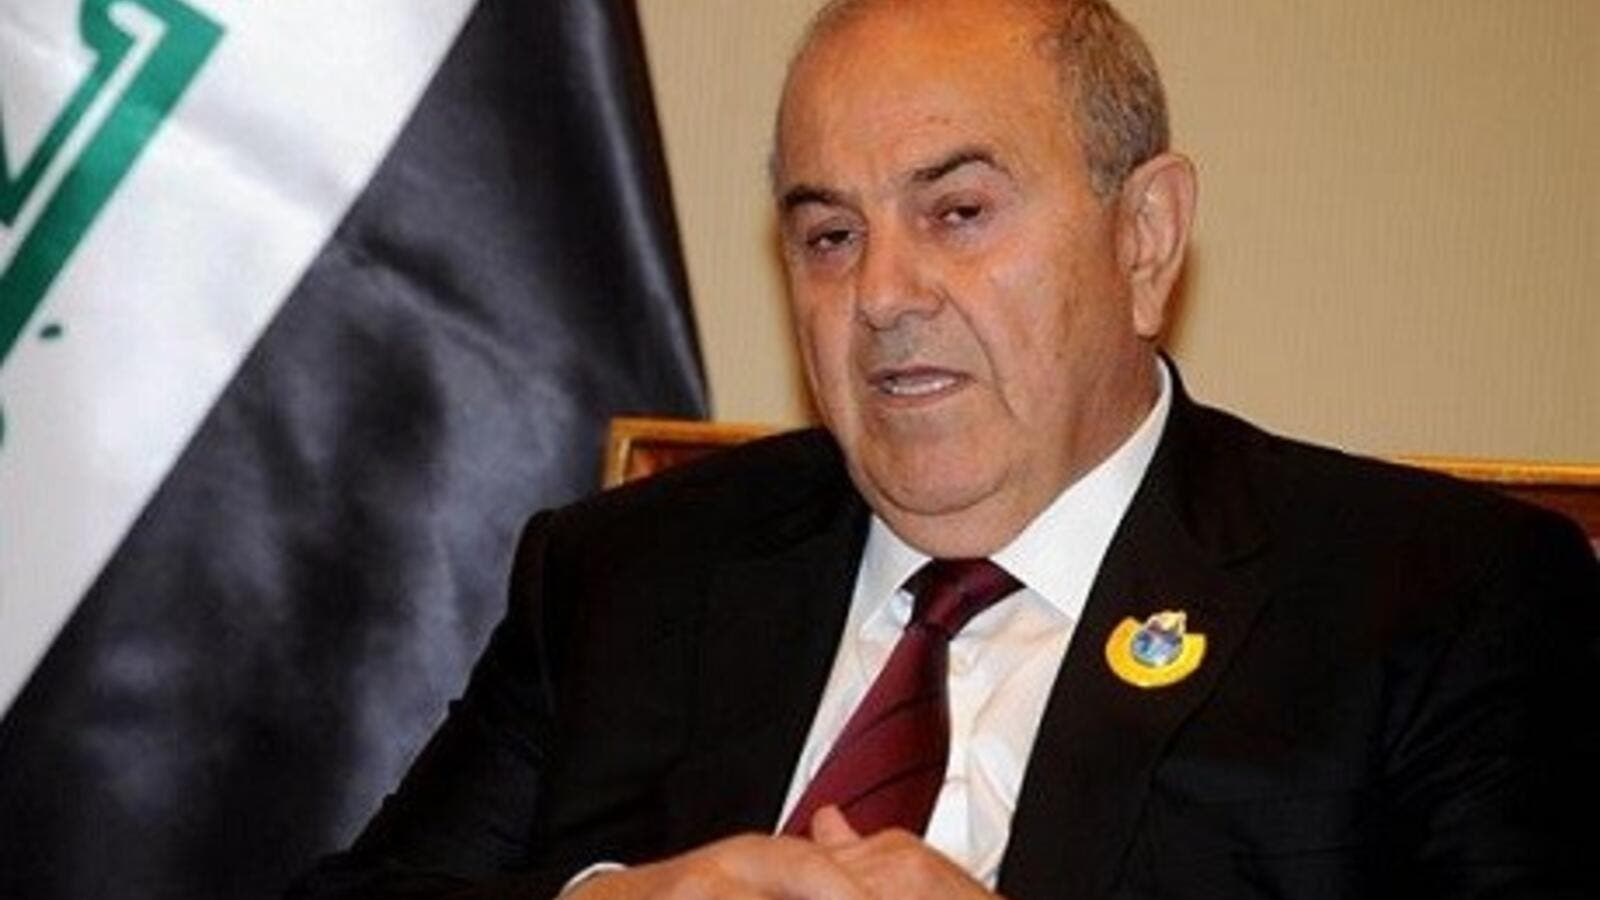 Vice President Ayad Allawi states he has developed new electoral campaign focusing on countering corruption. (AFP/ File Photo)